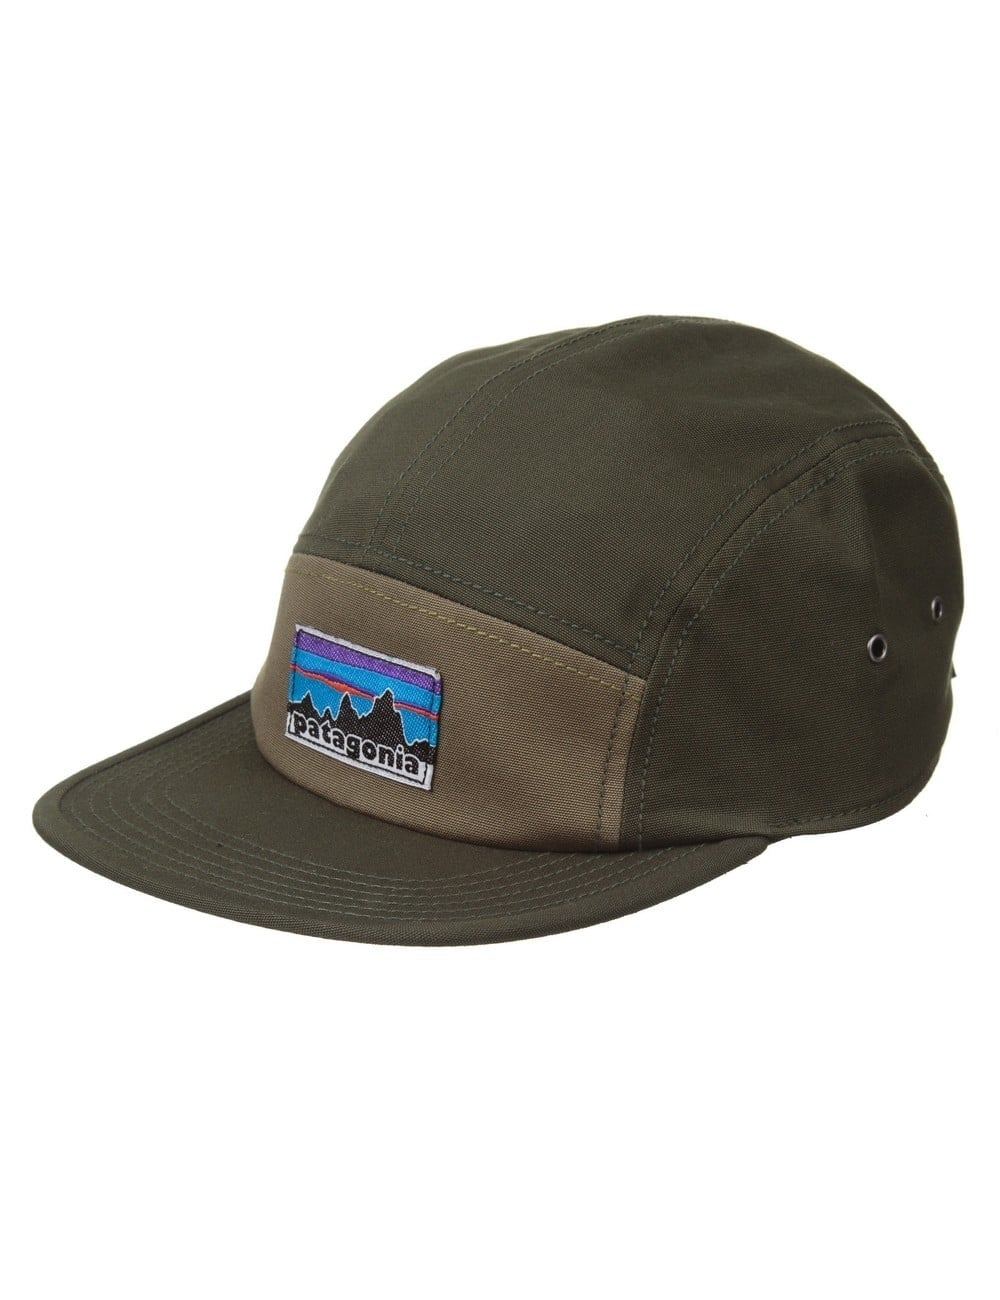 Patagonia Retro Fitz Roy Label Tradesmith Cap - Fatigue Green ... 95a8749cd6e